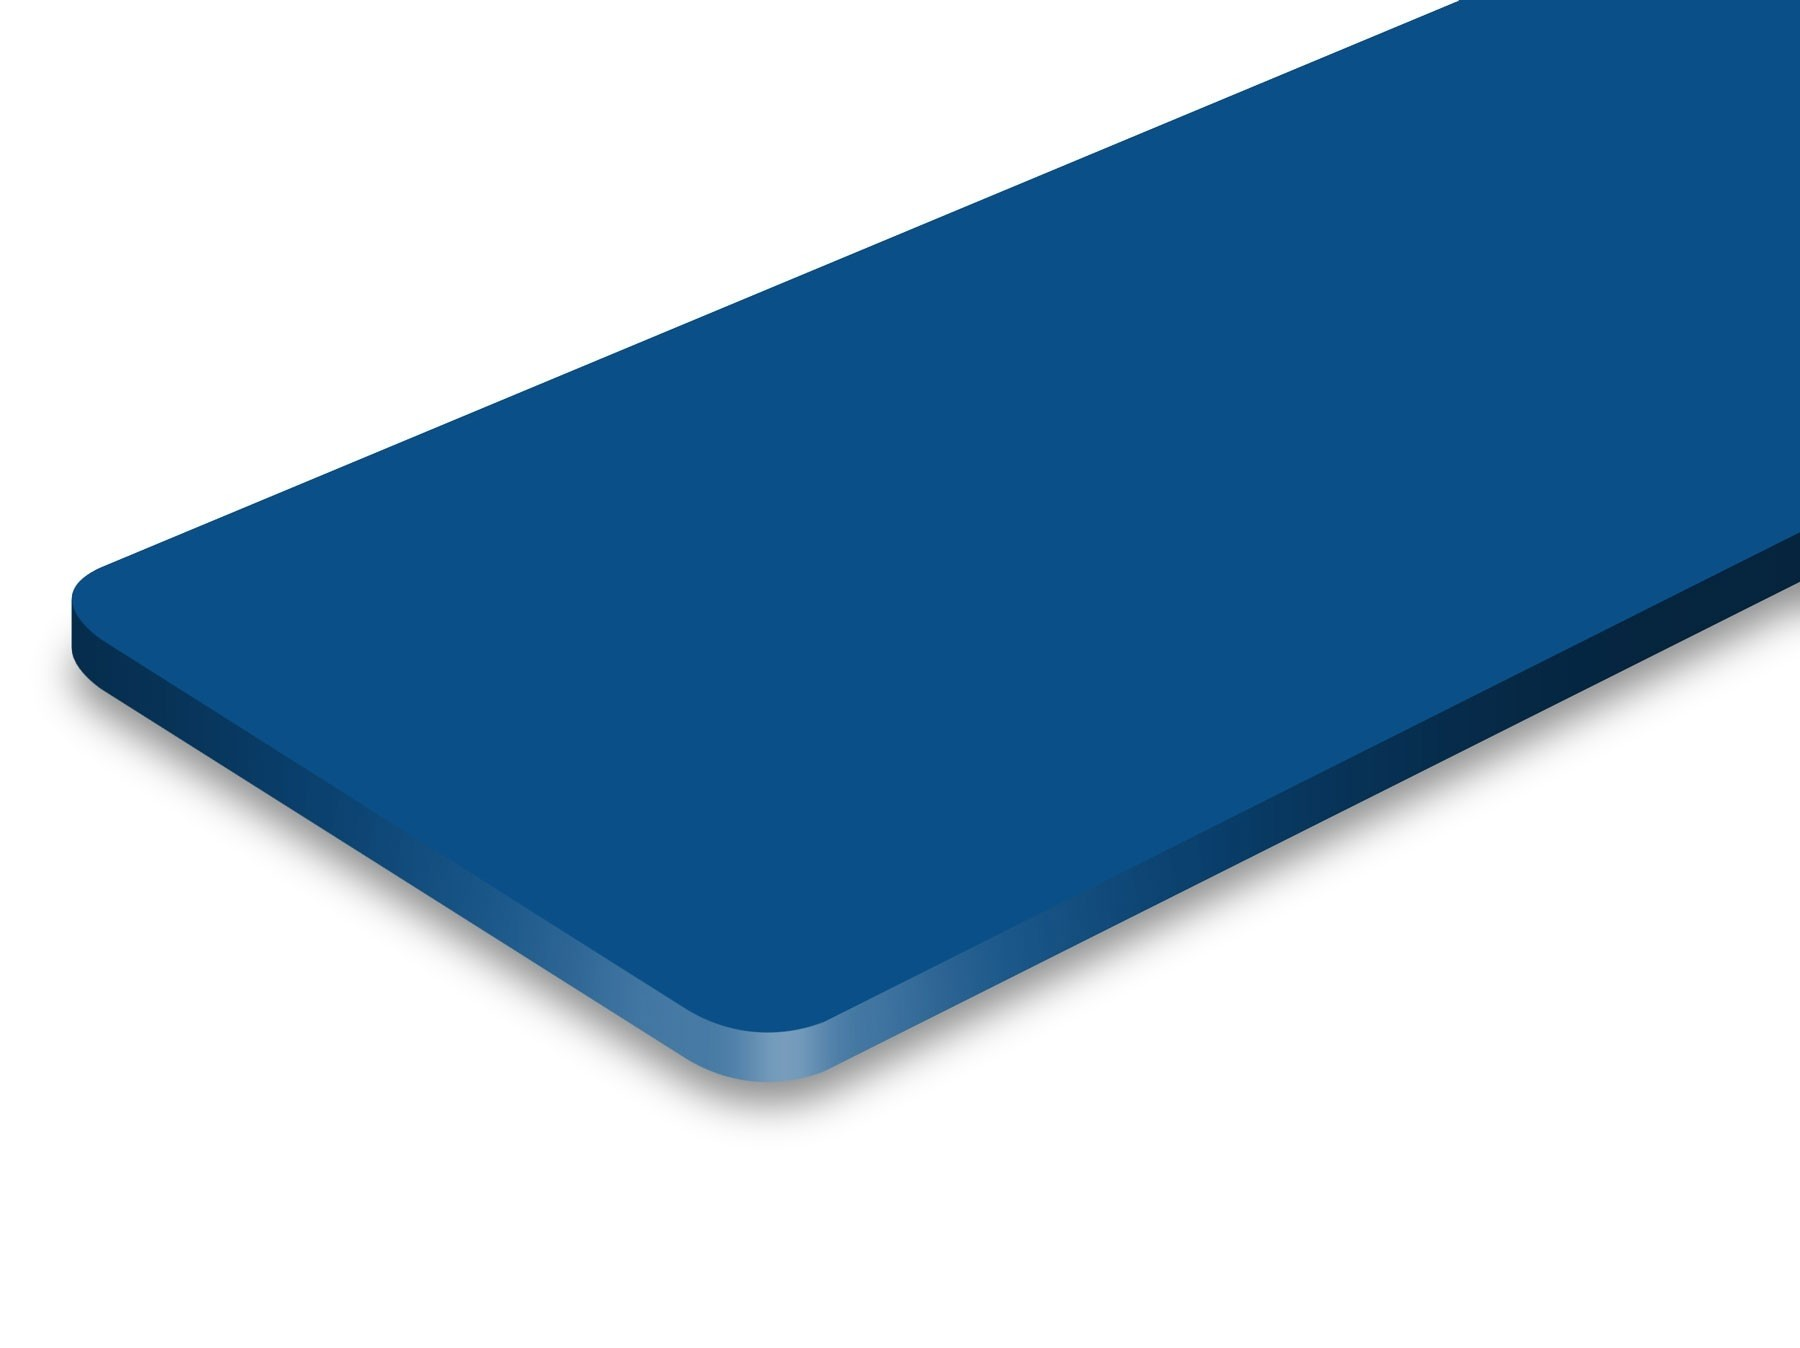 TroLase ADA Signage, Blue, 1ply, 1.6 mm